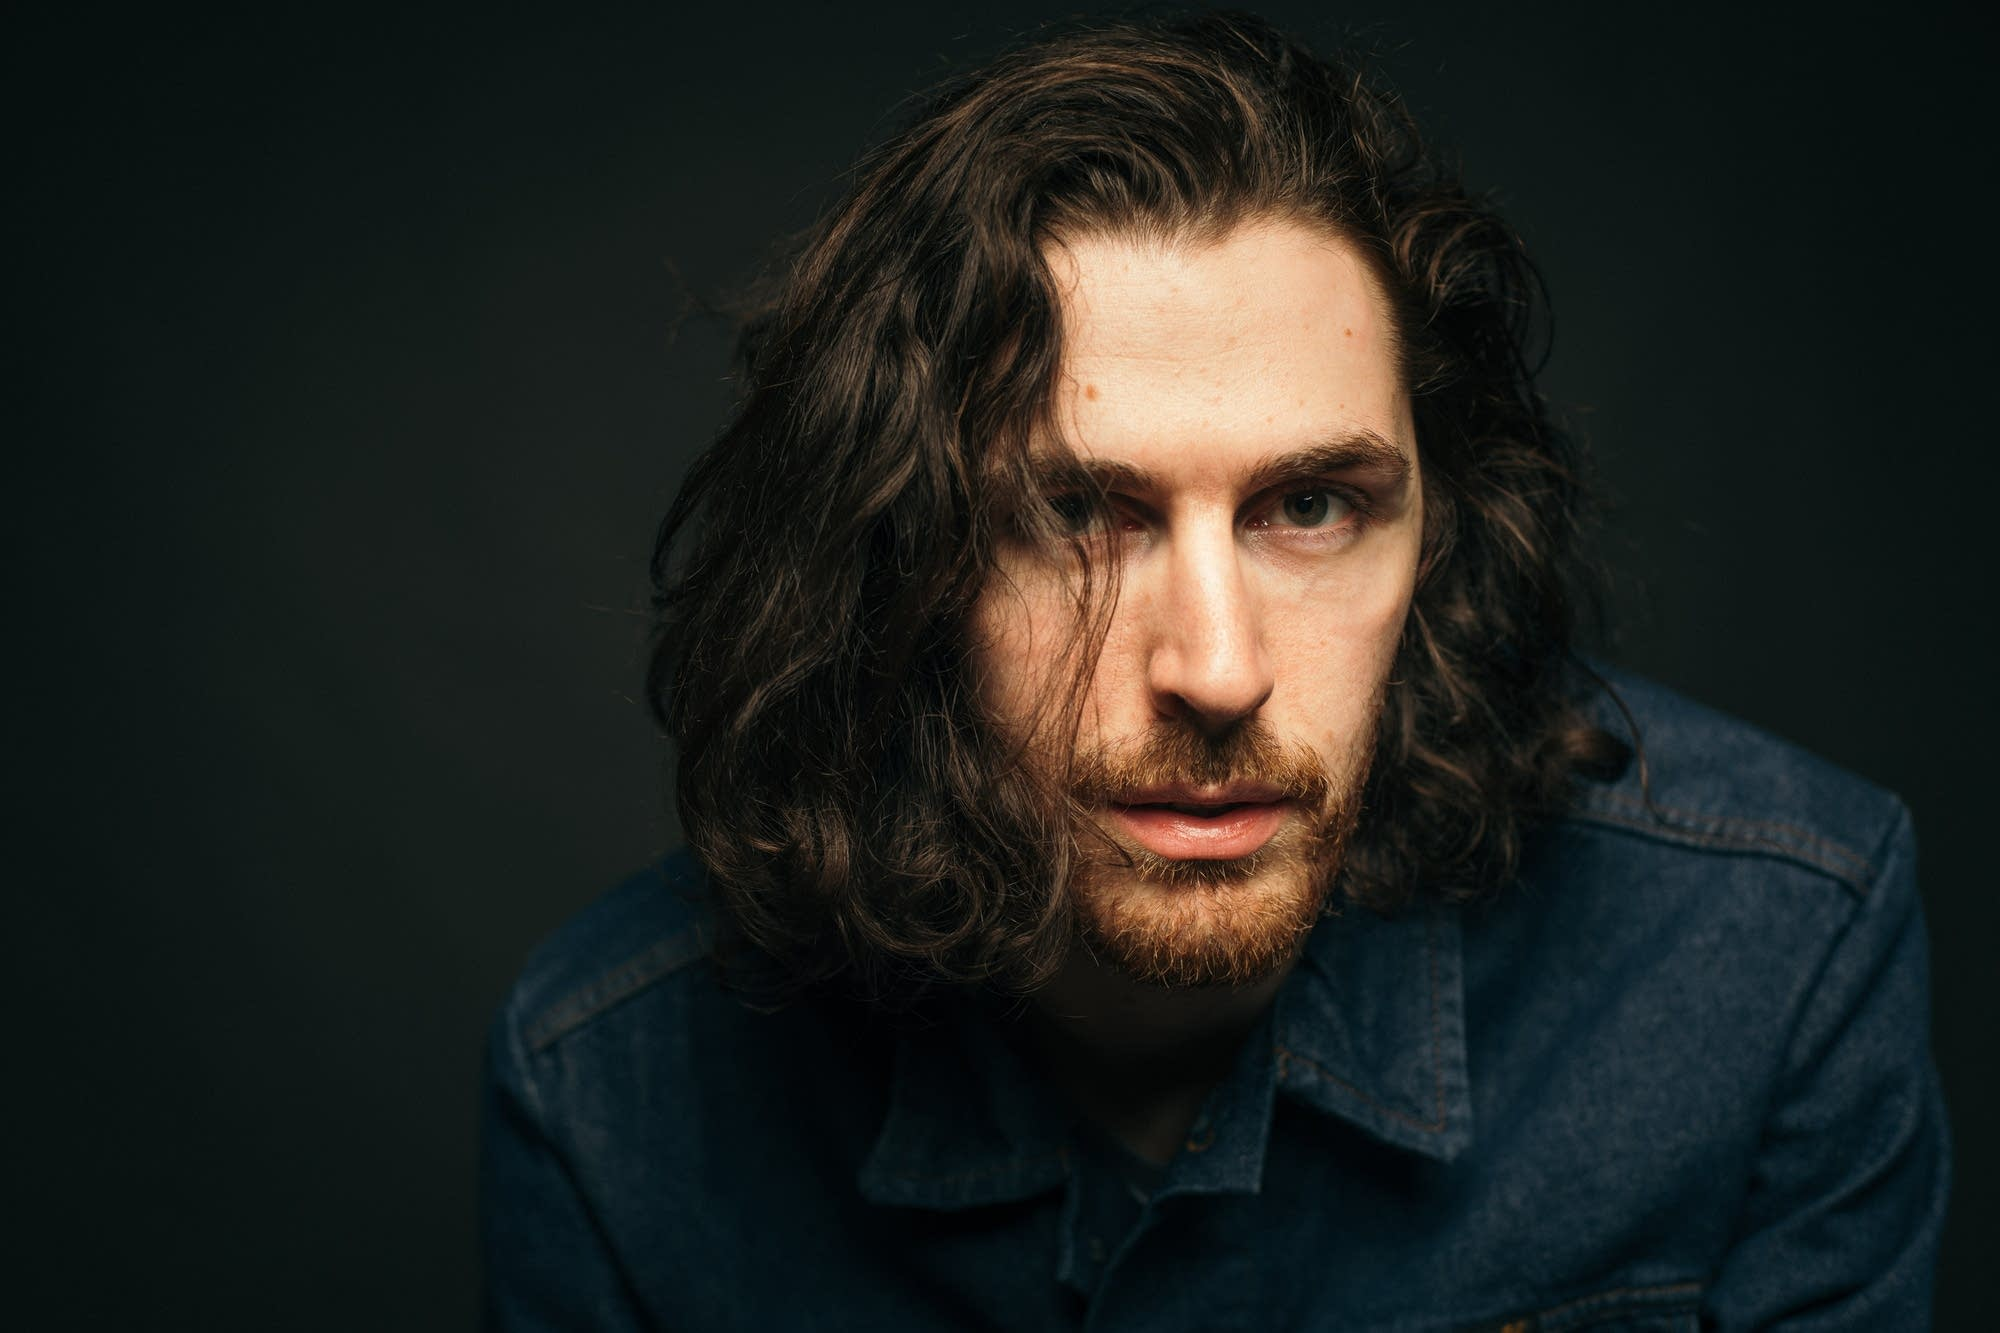 is hozier gay